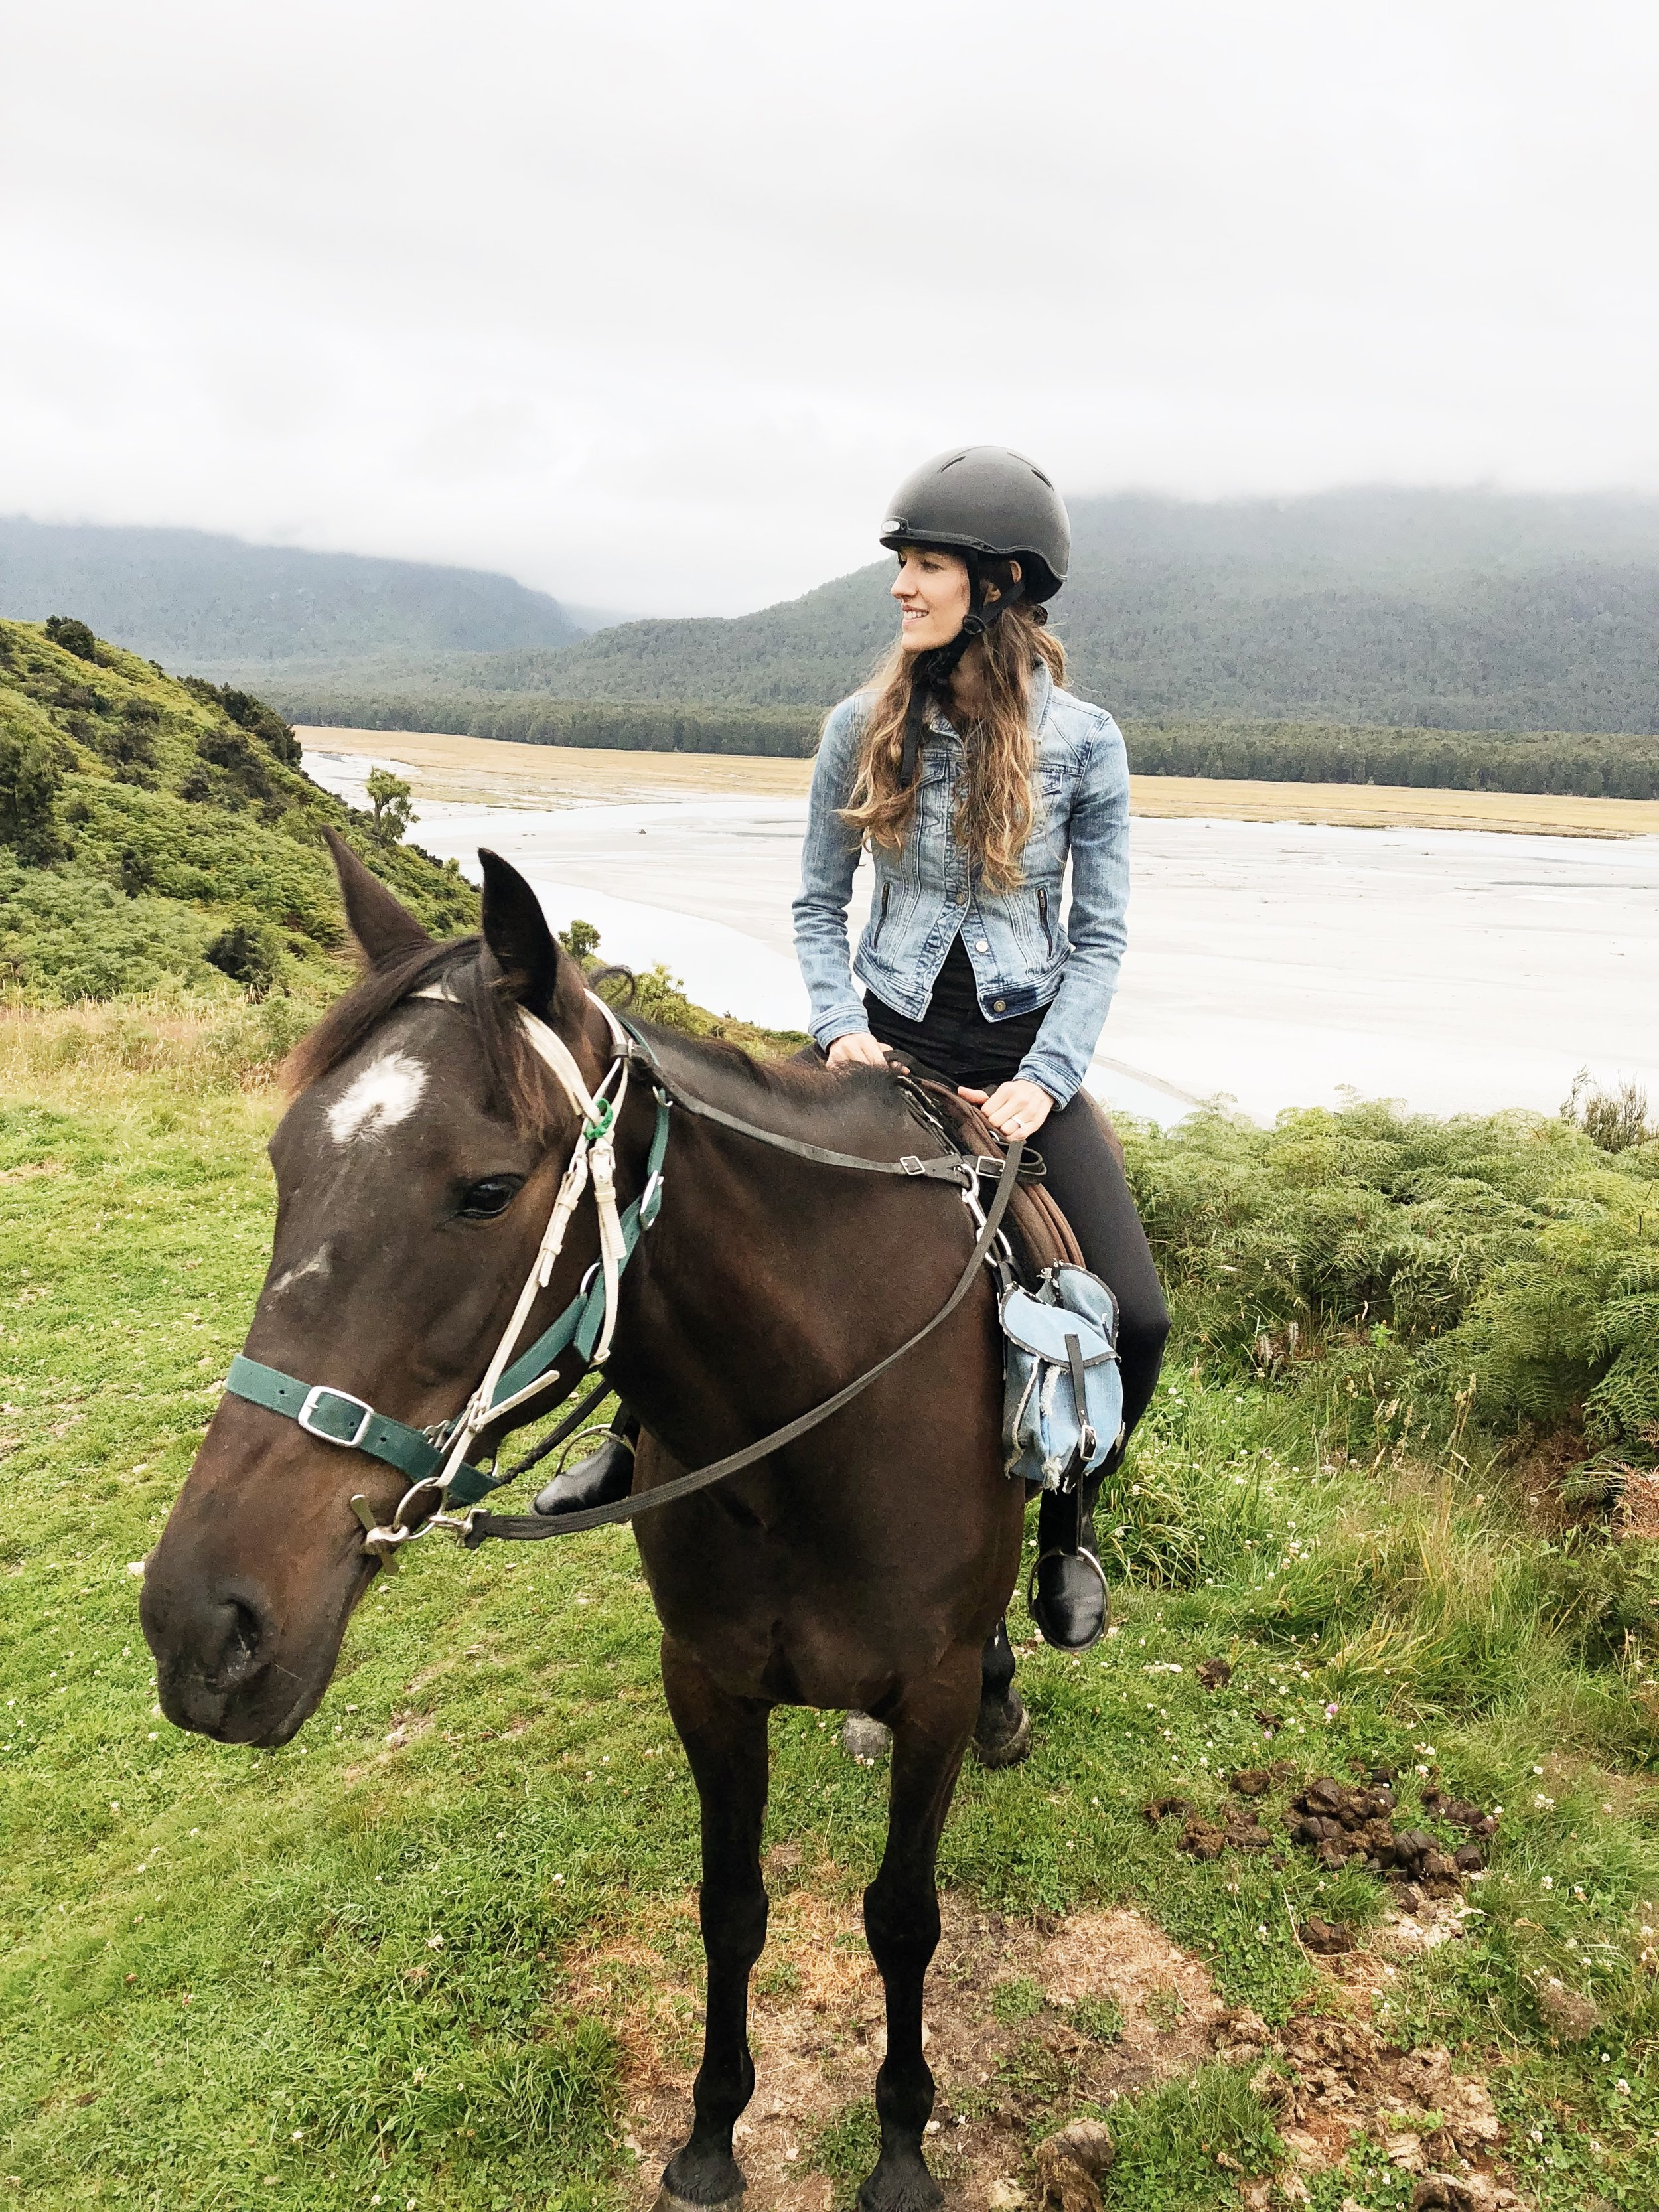 high-country-horses-new-zealand-photo-by-samantha-look.JPG